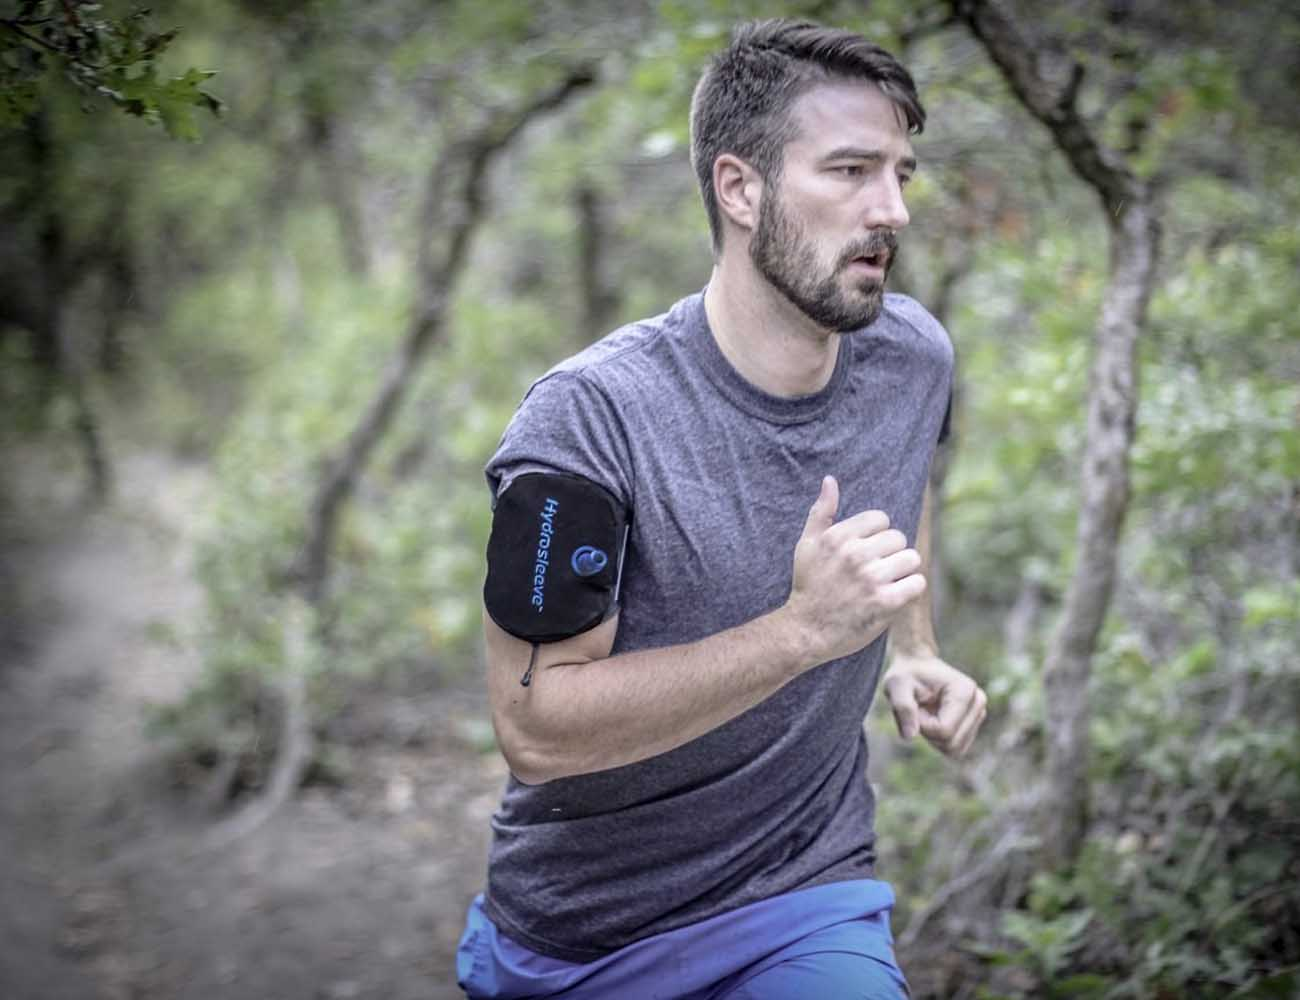 Hydrosleeve – Armband Hydration System for Runners and Athletes